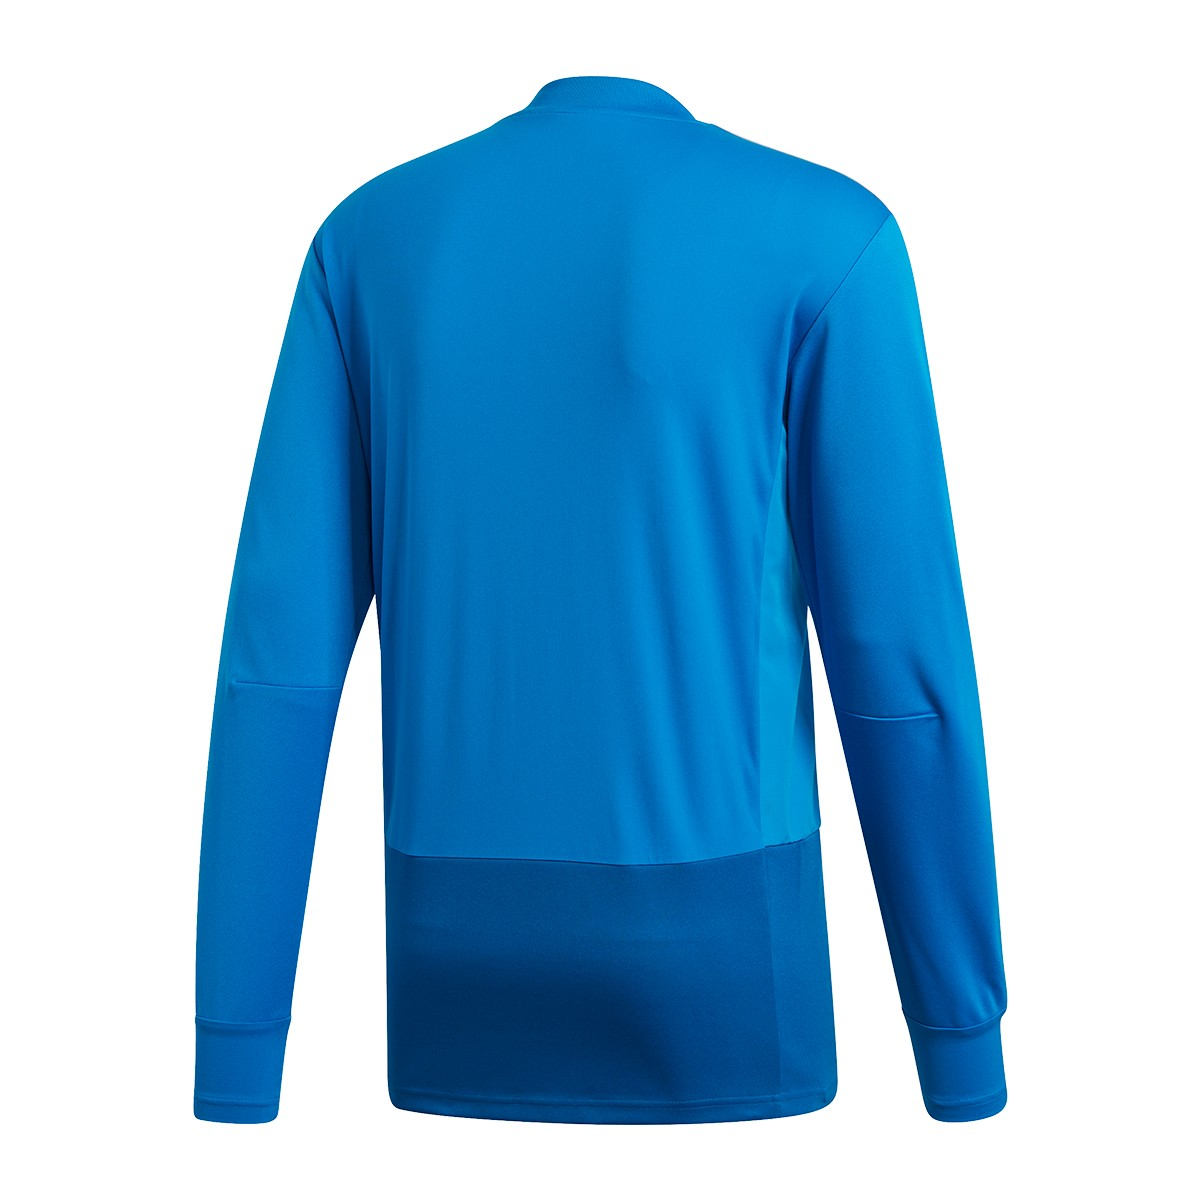 cheap for discount 05f75 bee93 Sudadera Real Madrid Training Top 2018-2019 Craft blue-Dark royal-Core white